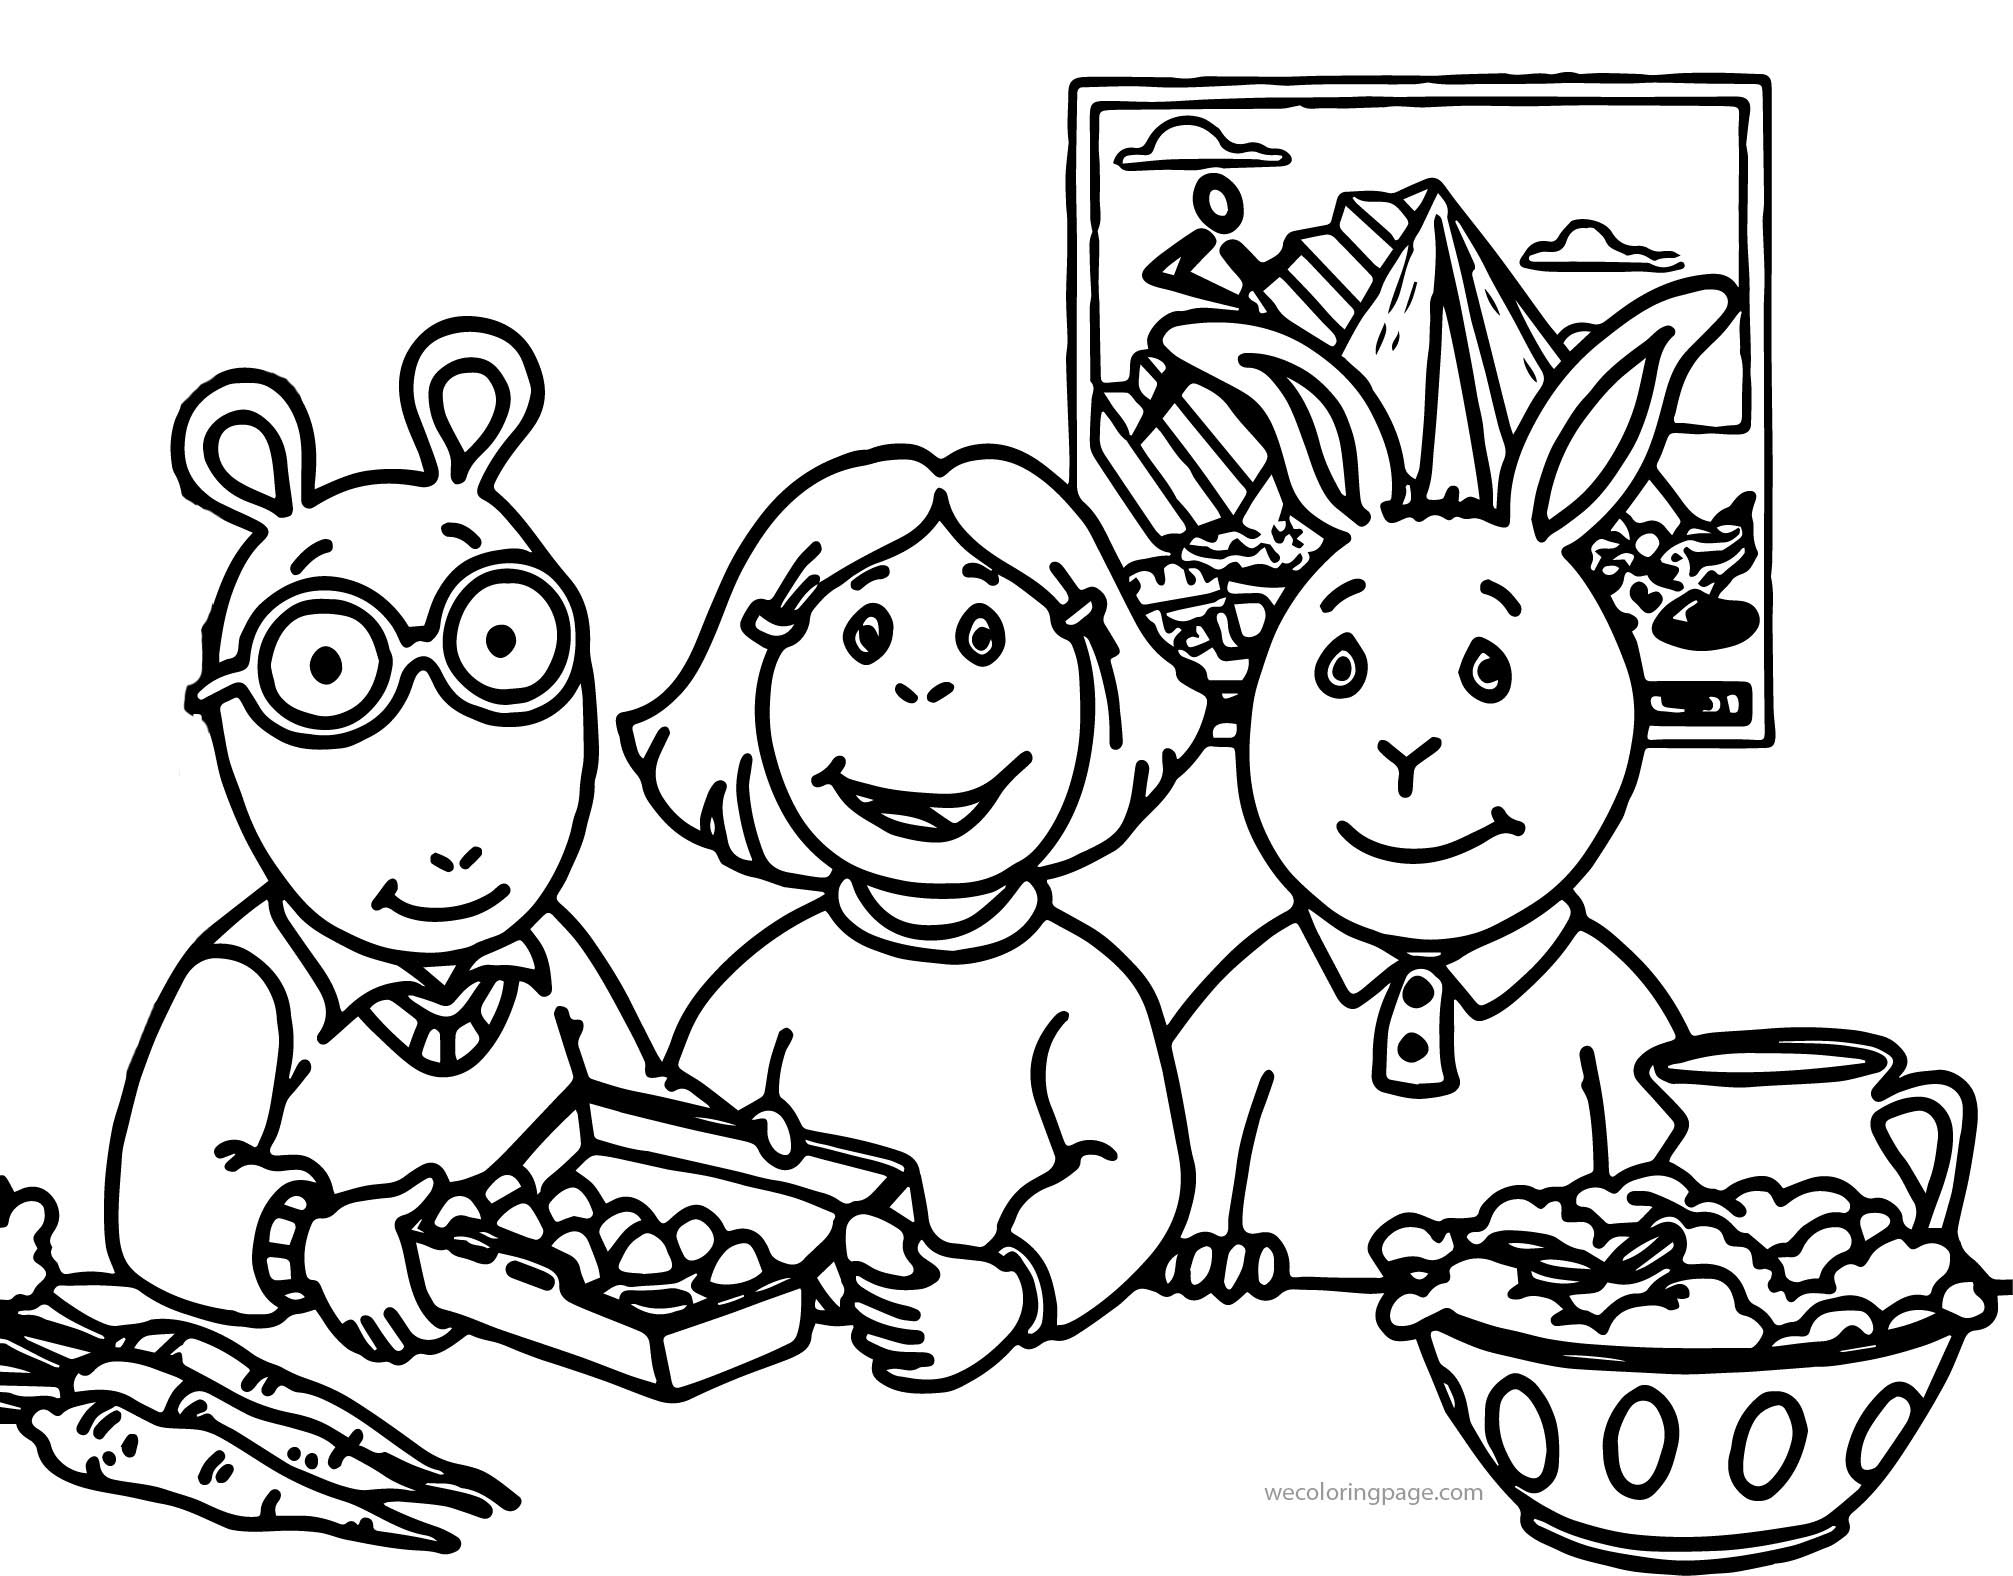 Arthur Pbs Kids Coloring Page